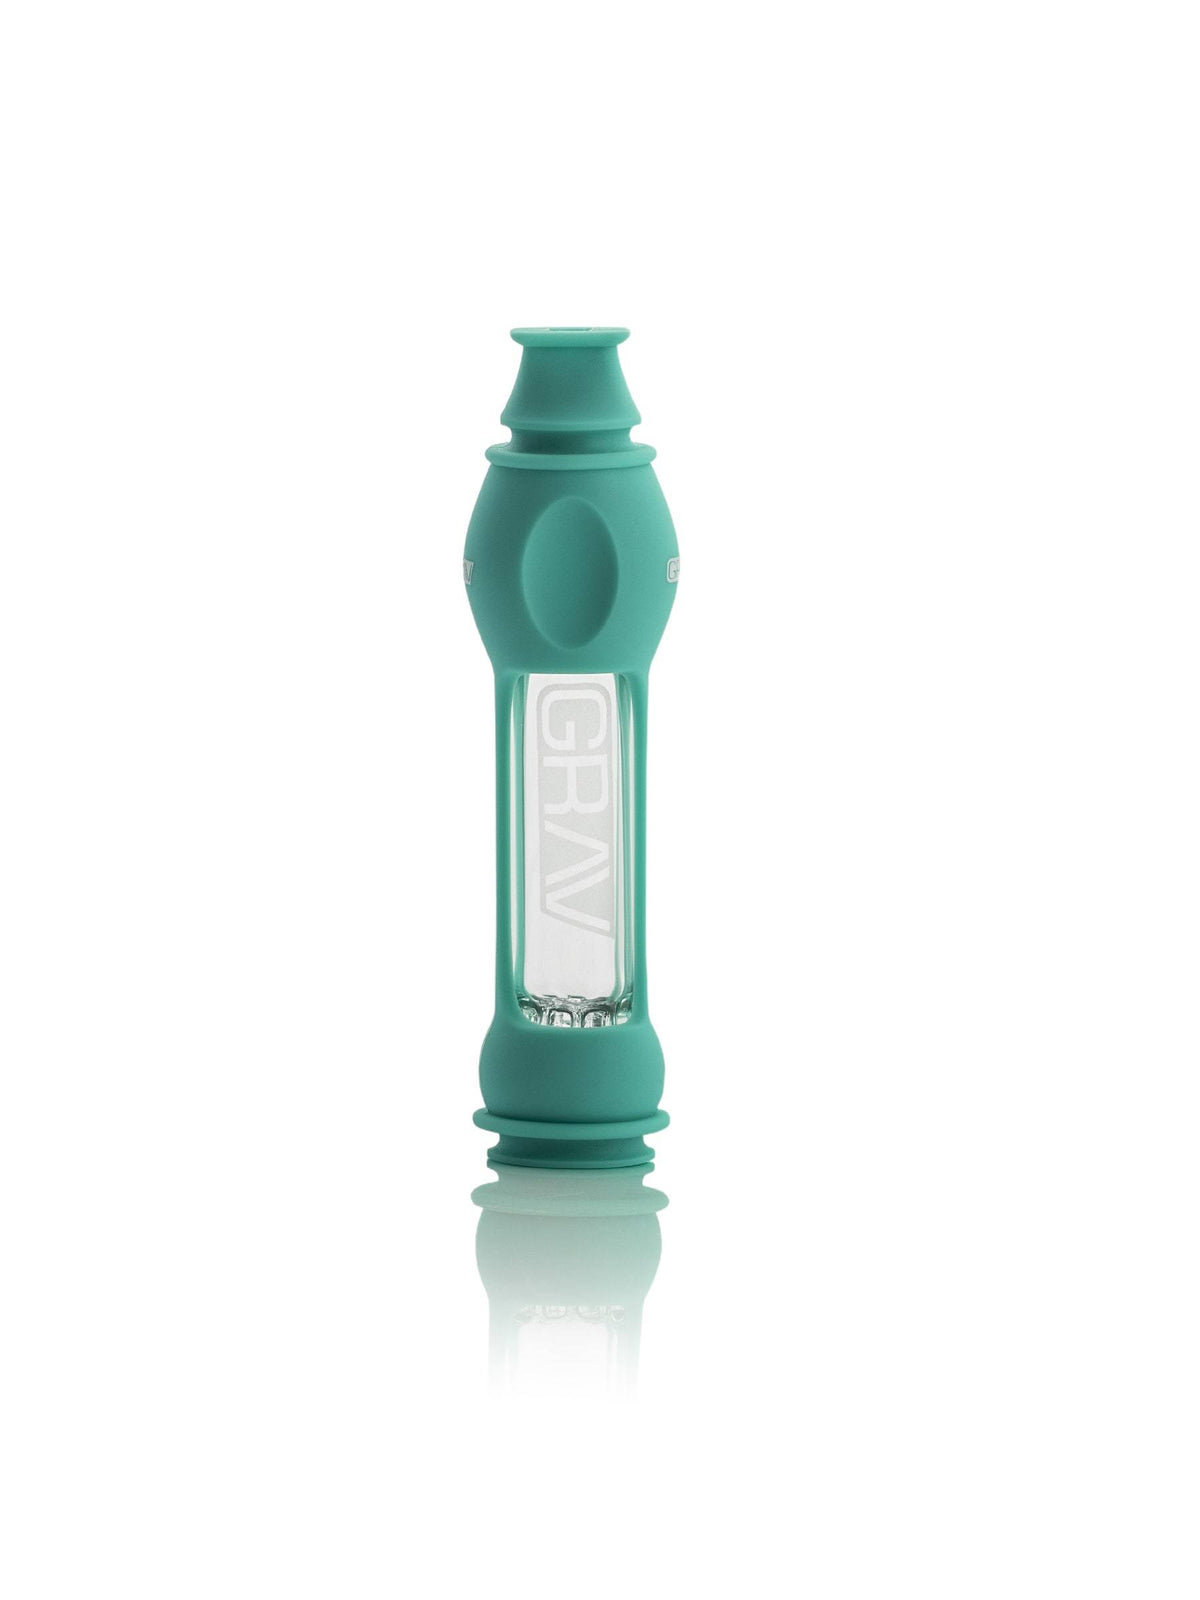 GRAV Octo-taster with Silicon Skin - TEAL (16mm)